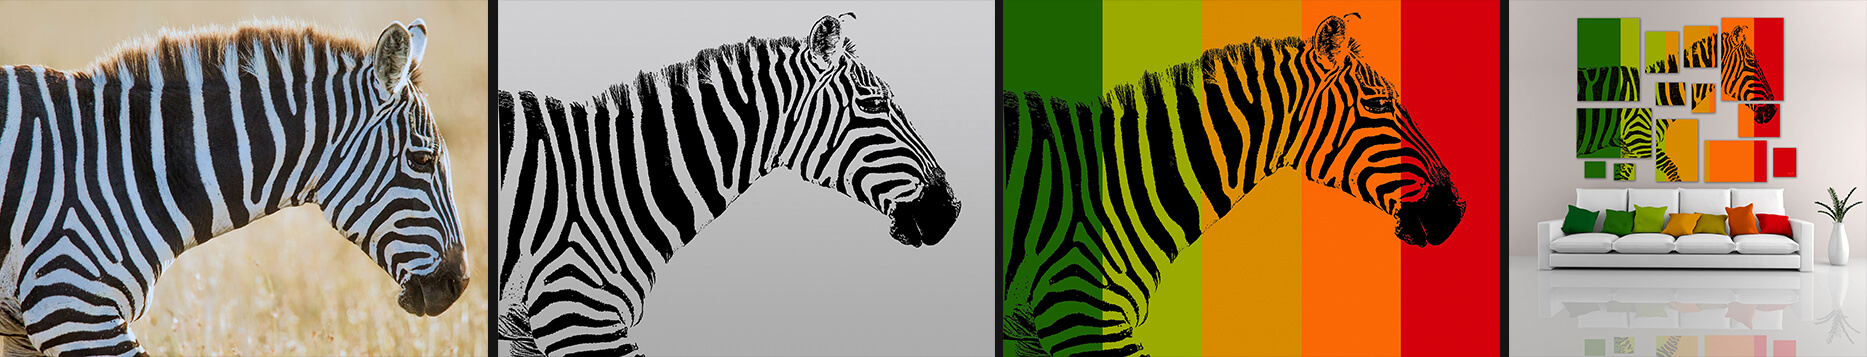 Zebra Photographic Mosaic